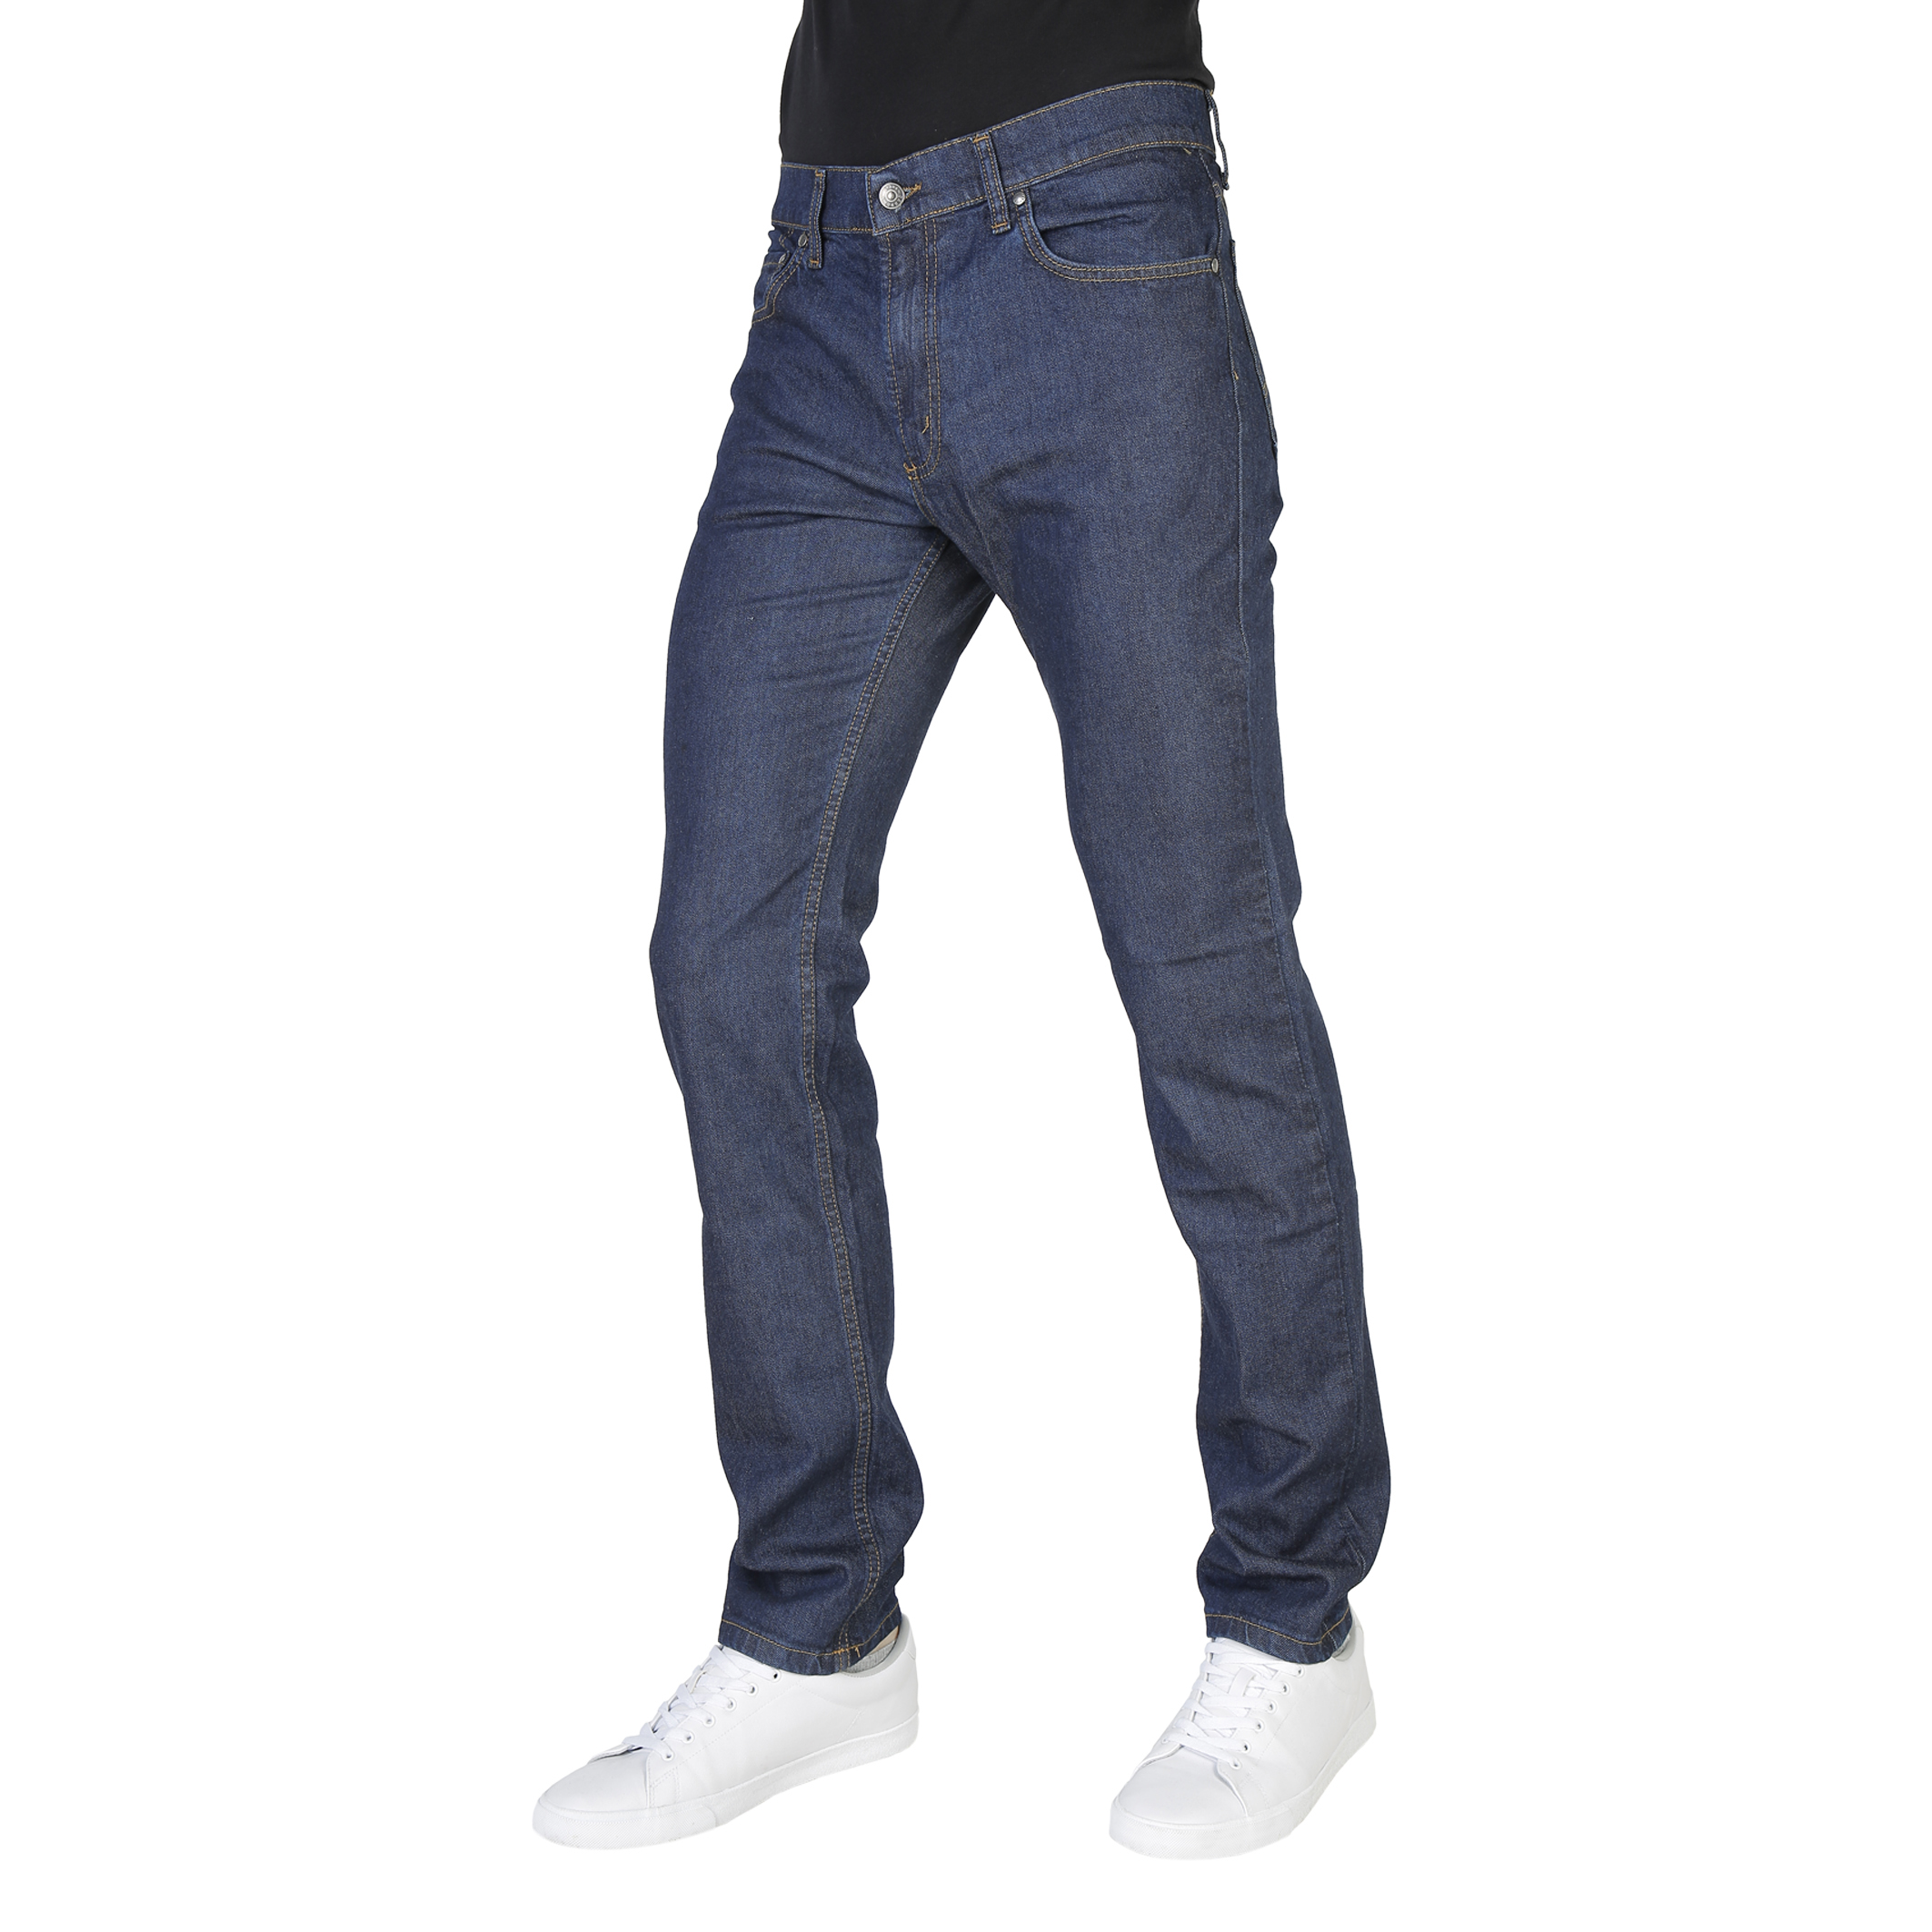 Jeans  Carrera Jeans 000700_0921A blue